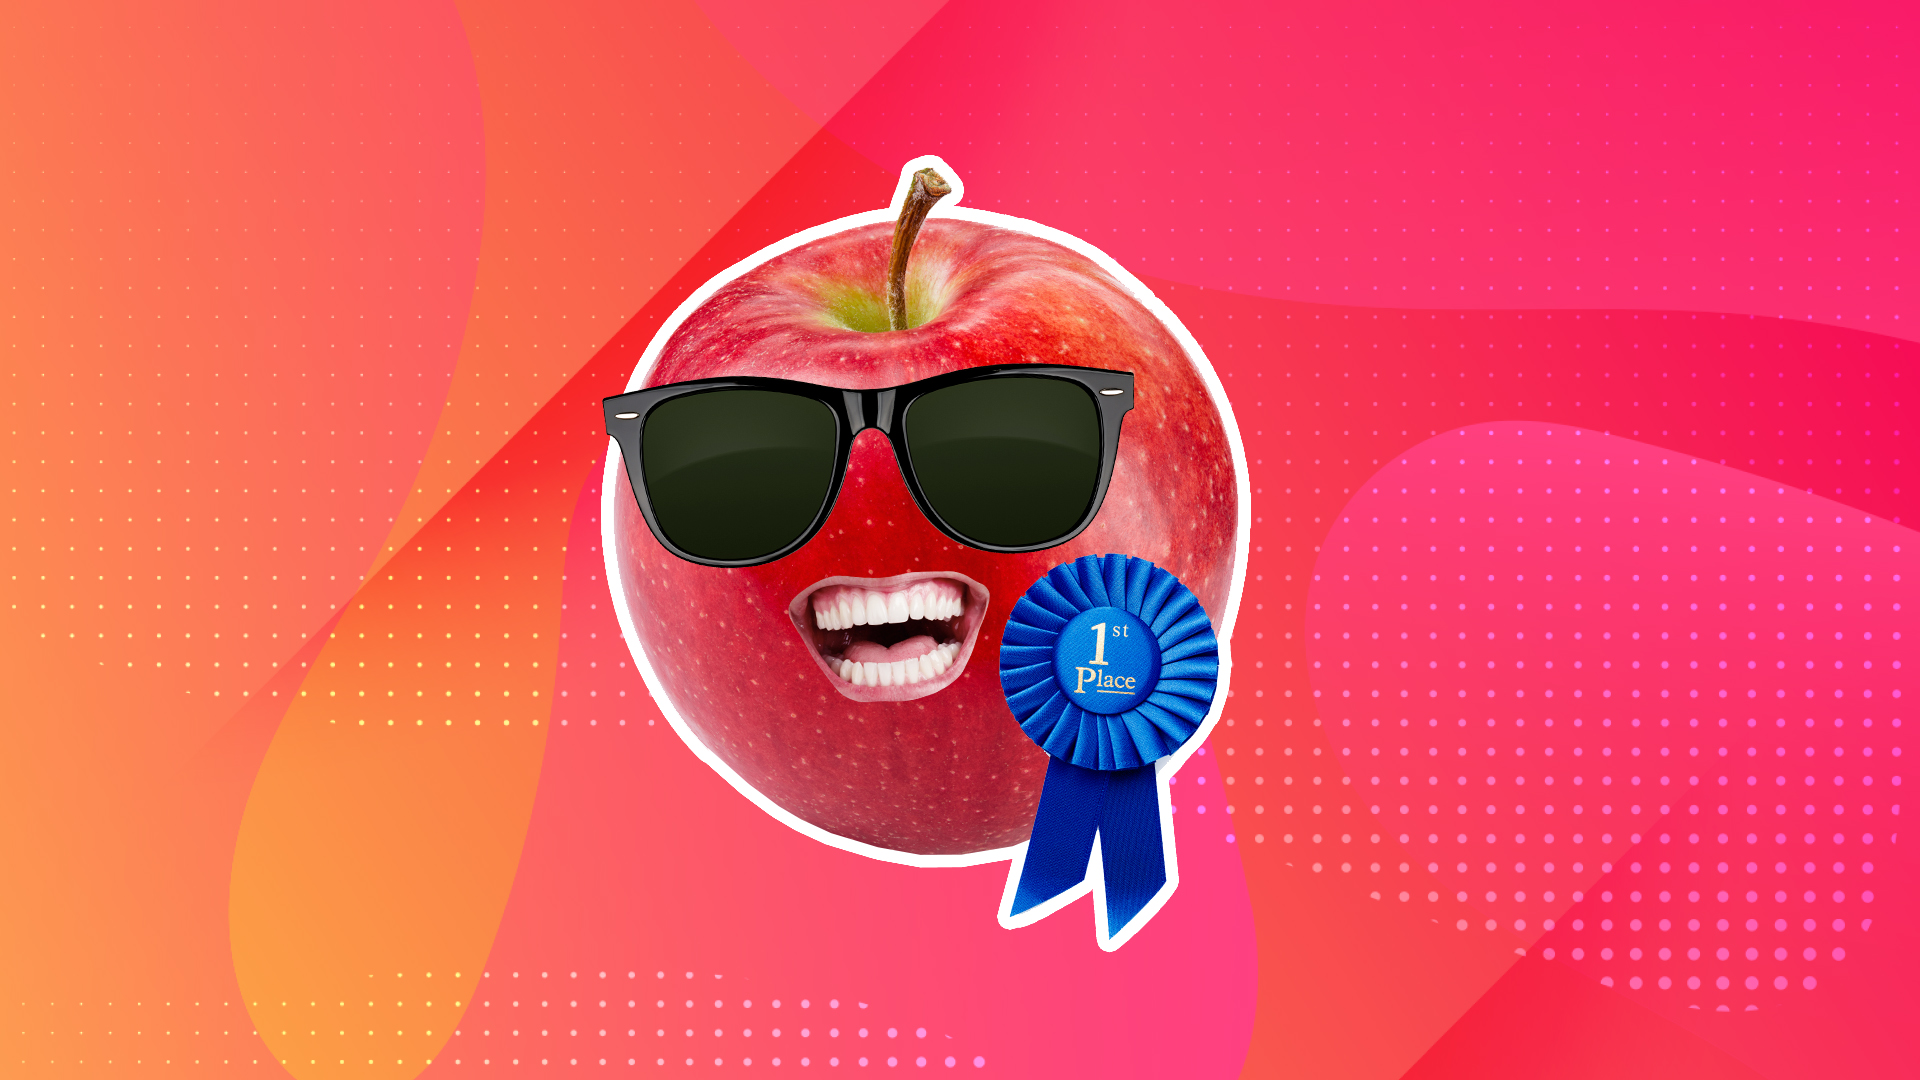 Apple with first prize rosette